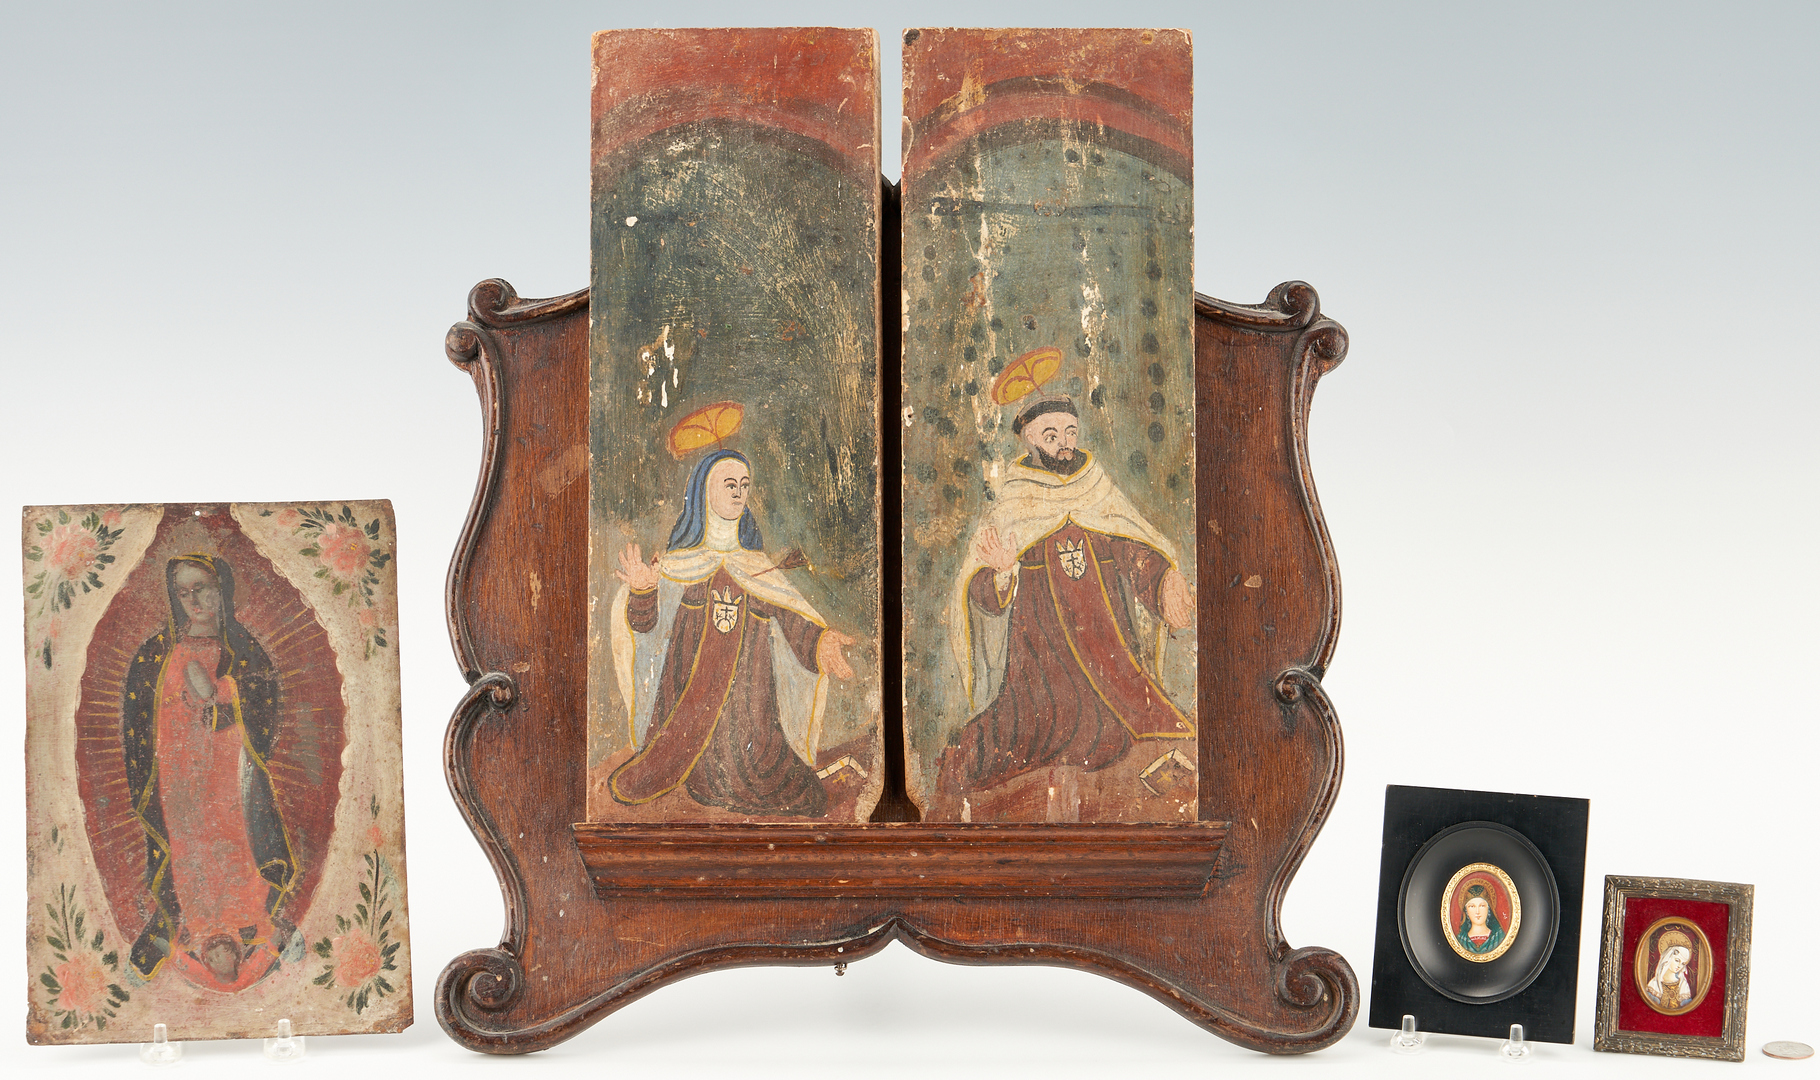 Lot 440: Group of 5 Religious Images & Display Easel